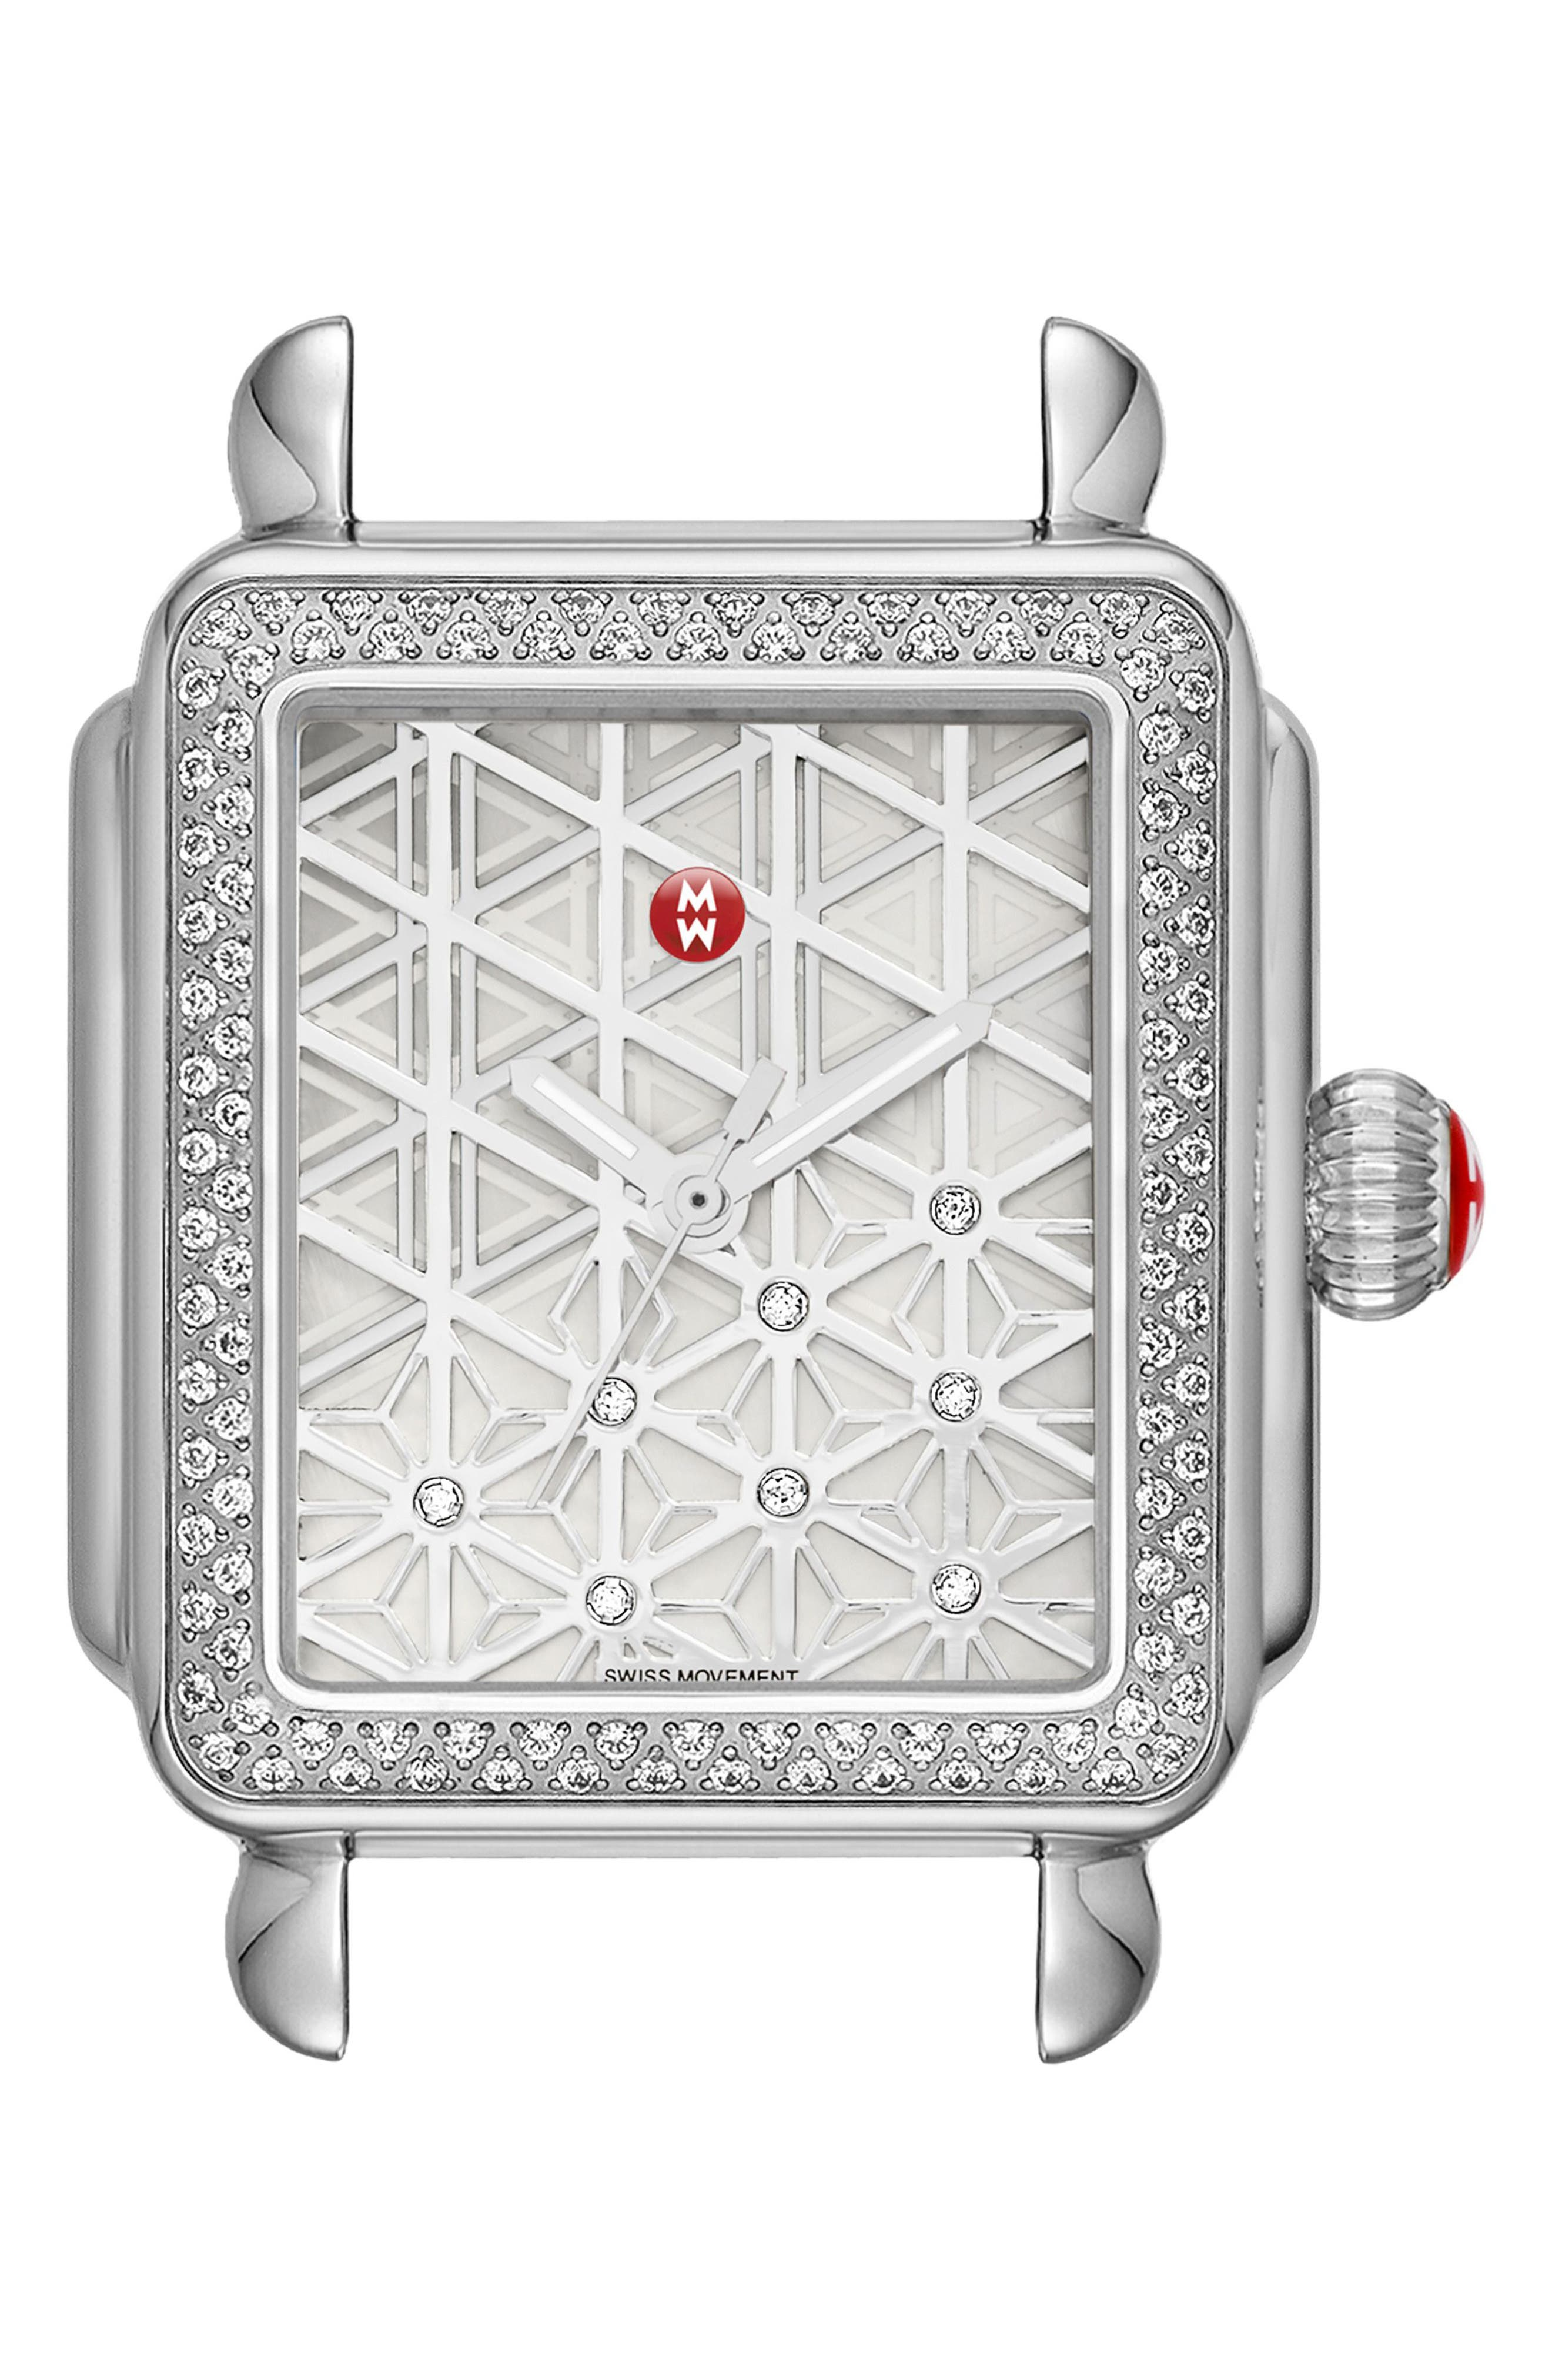 Alternate Image 1 Selected - MICHELE Deco Diamond Diamond Dial Watch Case, 33mm x 35mm